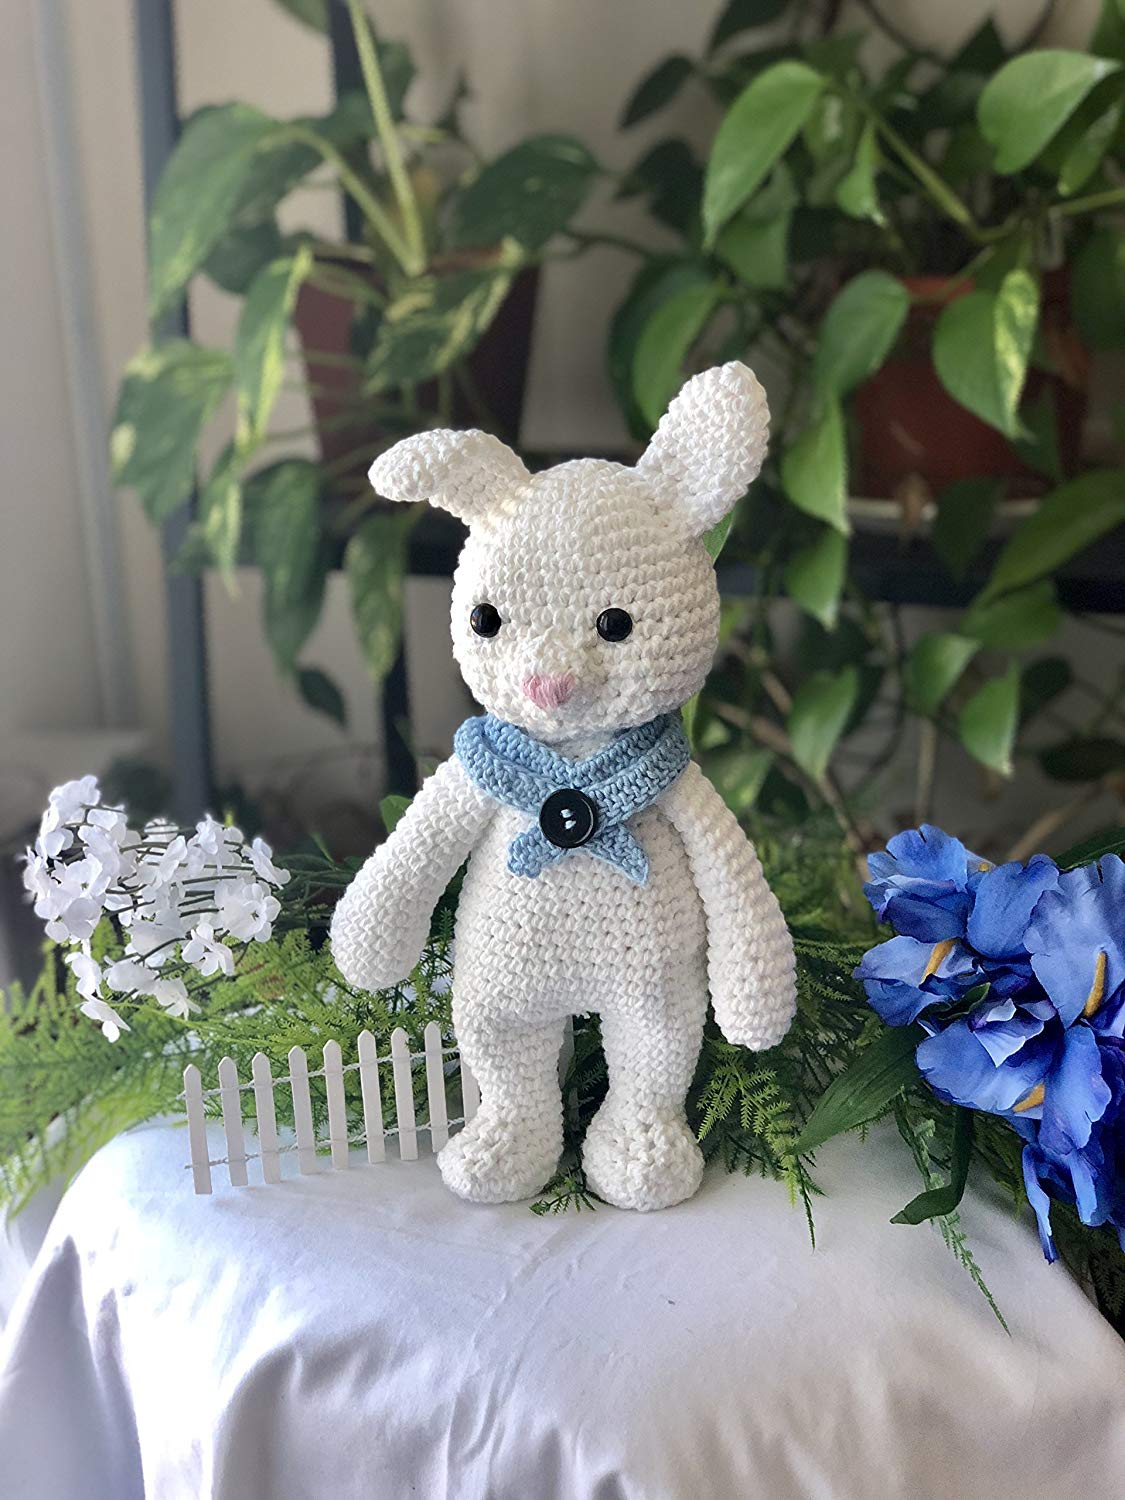 Crochet Toy, Bunny, Stuffed Animal, White, Baby Gift, Baby Shower, Nursery, Crib Toy, Hand Made